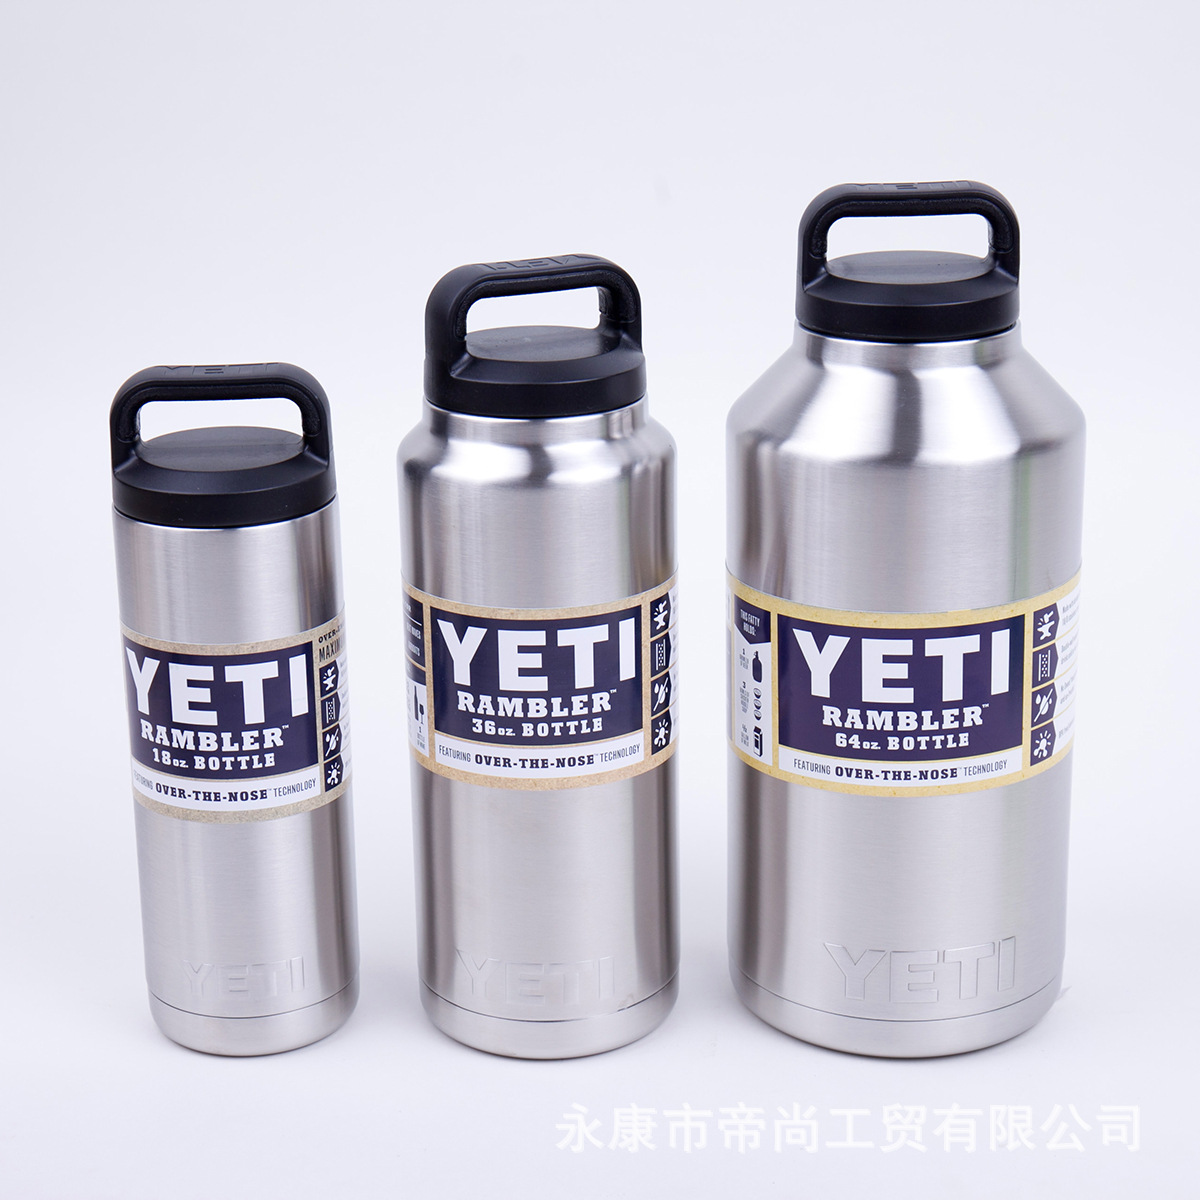 Newest <font><b>Yeti</b></font> 64/36/18/12oz <font><b>Rambler</b></font> <font><b>304</b></font> <font><b>Stainless</b></font> <font><b>Steel</b></font> <font><b>Cups</b></font> <font><b>Cooler</b></font> <font><b>Yeti</b></font> <font><b>Rambler</b></font> Tumbler <font><b>Cup</b></font> Vehicle Beer Mug Double Wall Bilayer